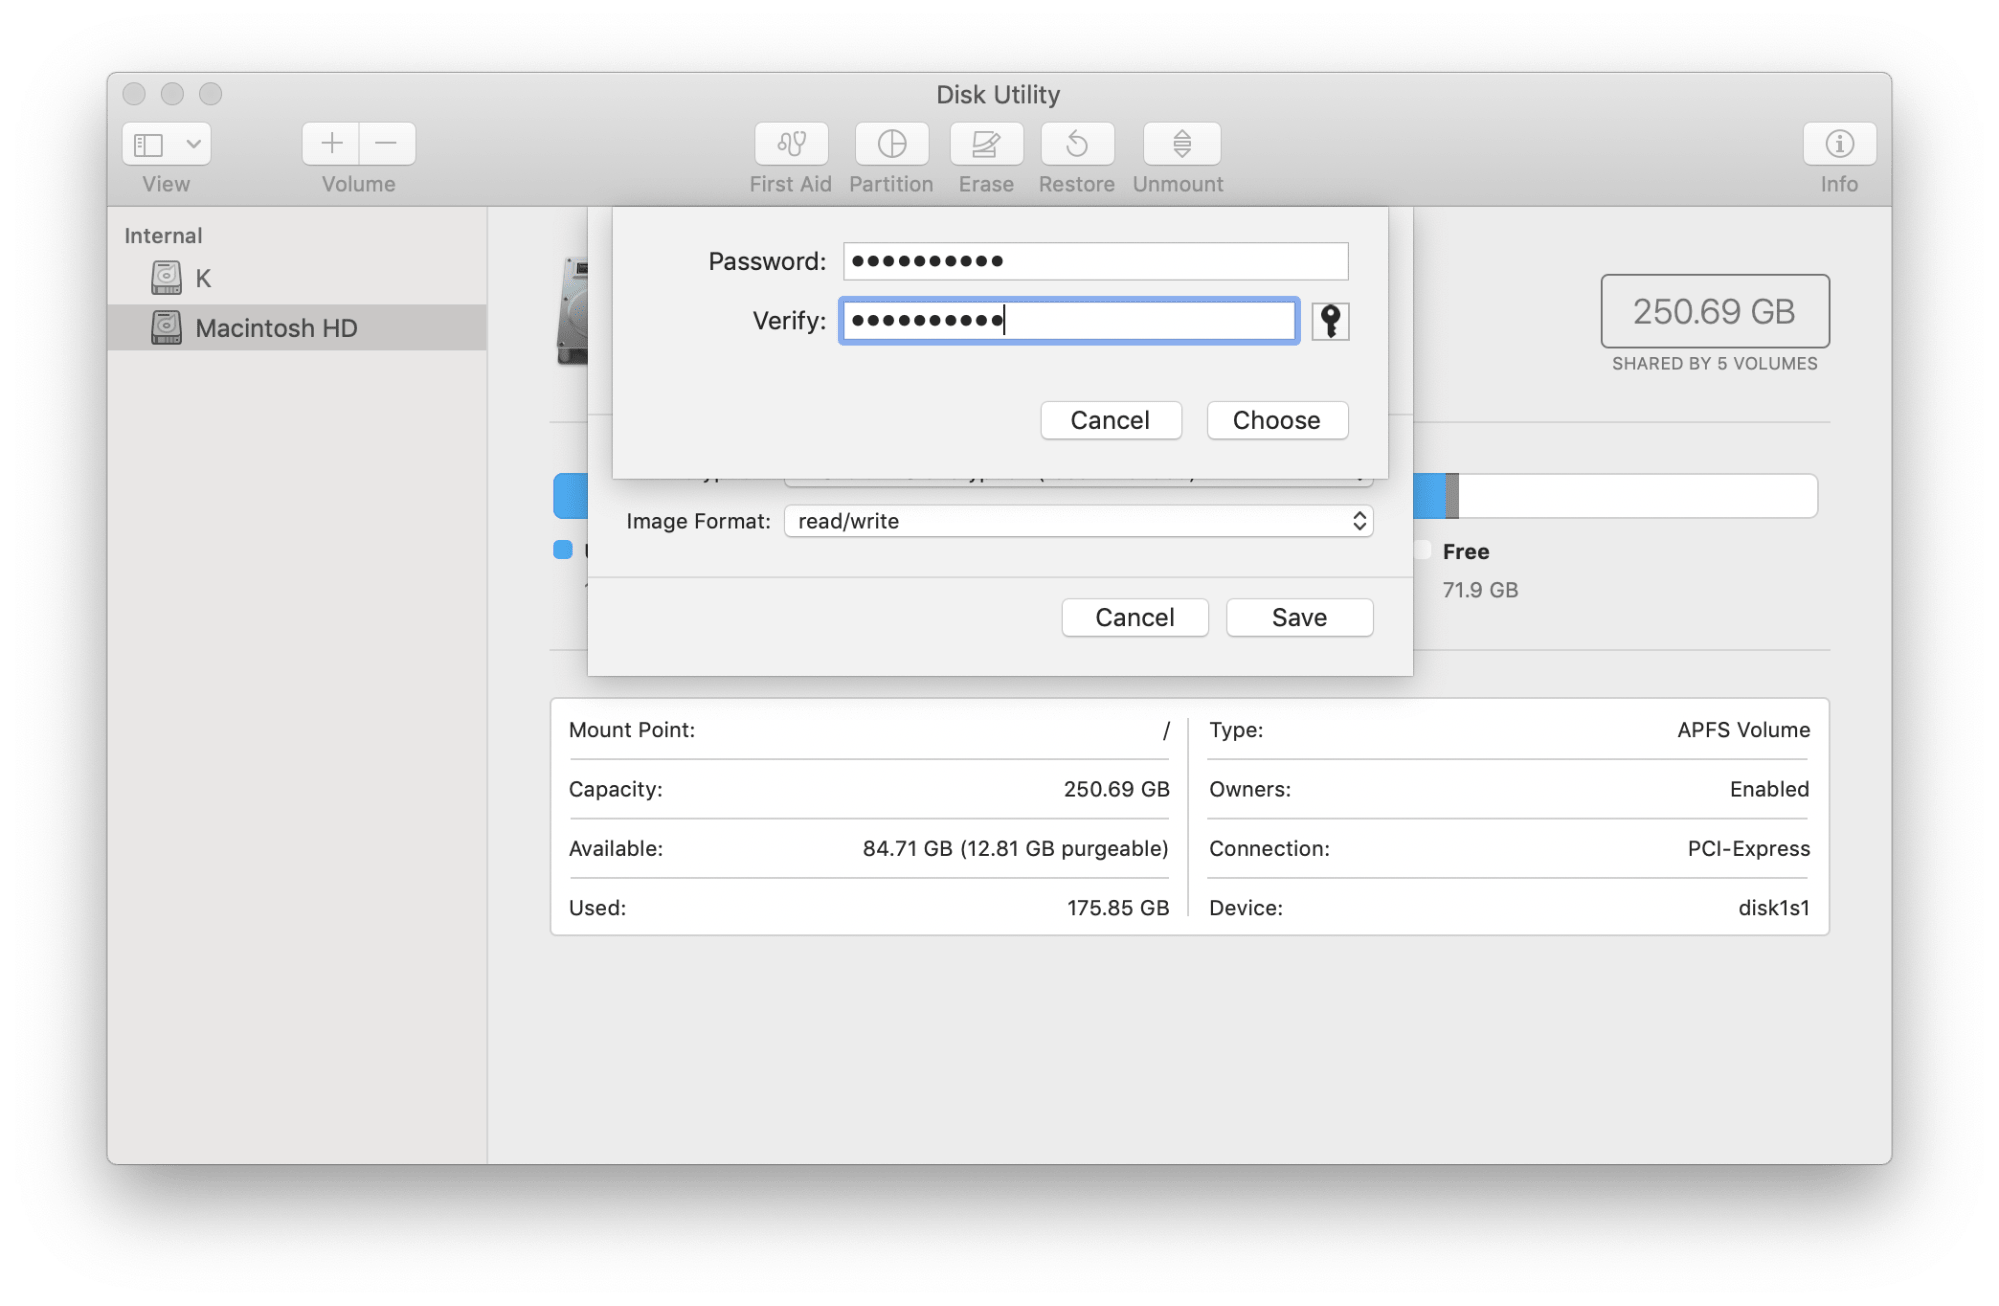 Password entry window of Disk Utility